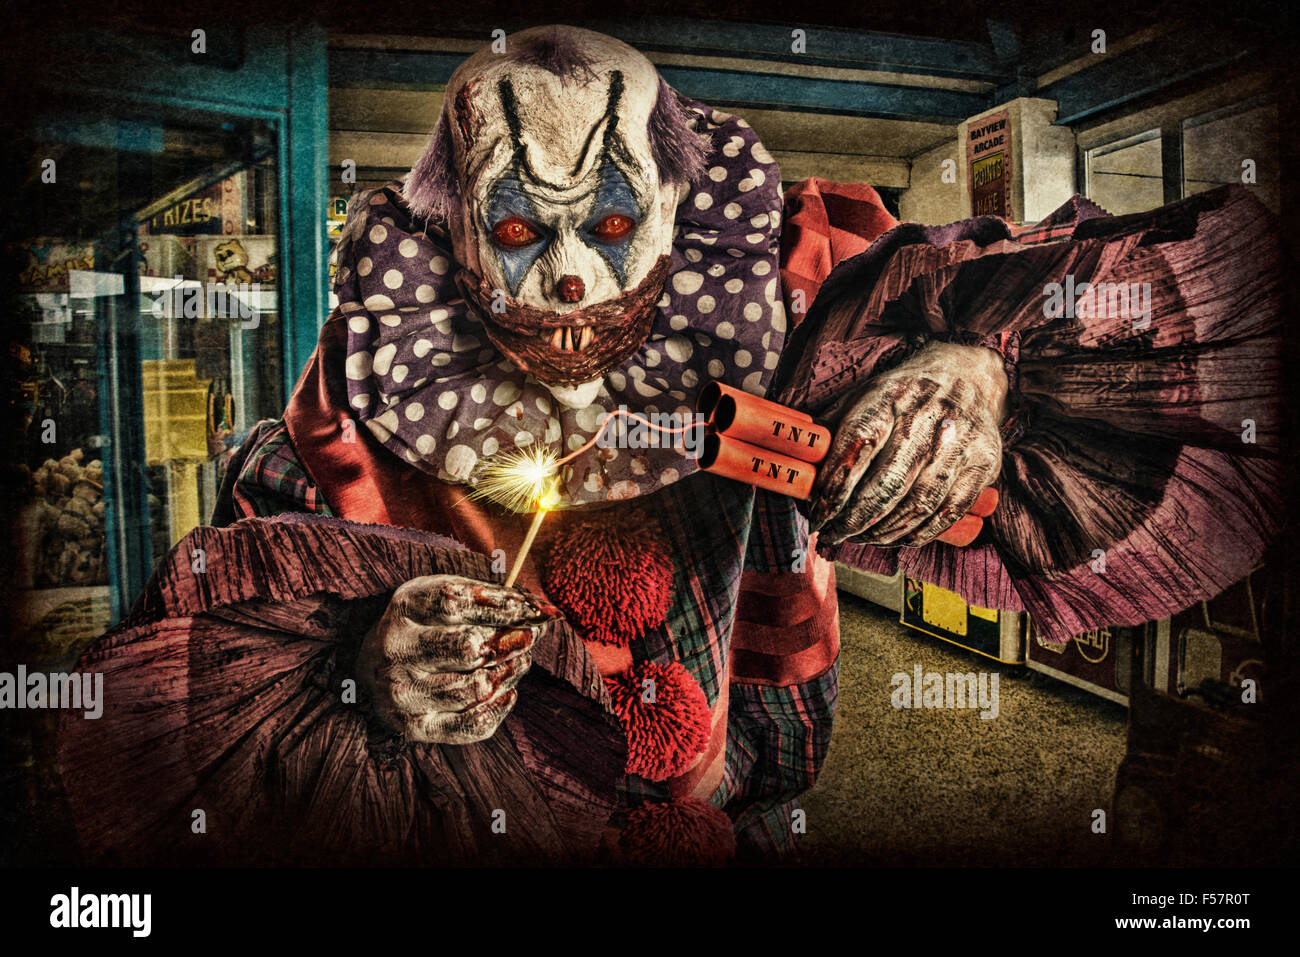 Scary creepy clown with TNT/Dynamite, - Stock Image